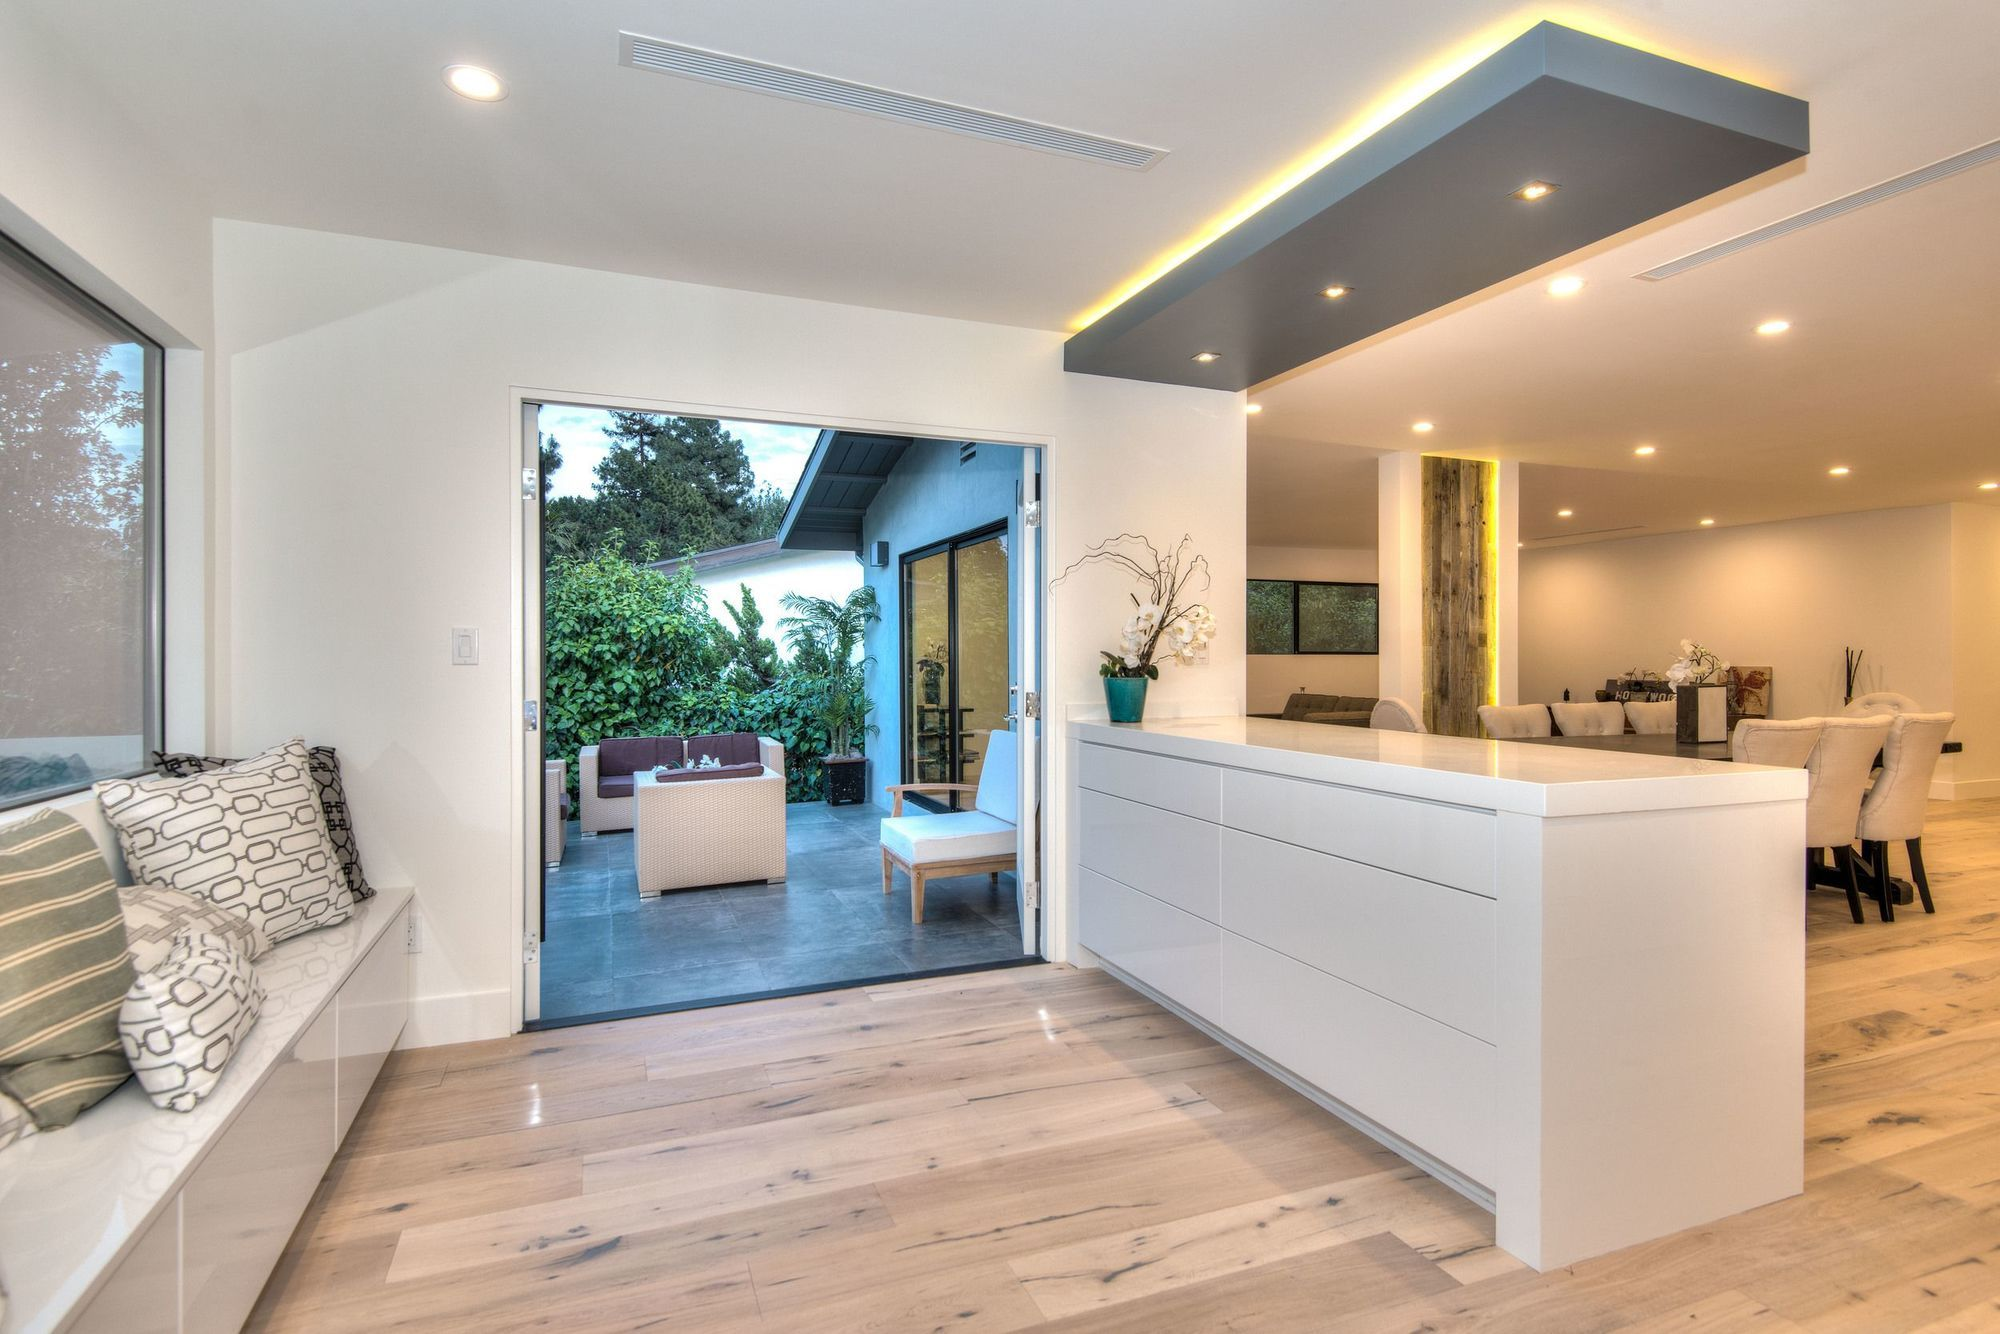 kitchen remodel cost kitchen remodeling miami kitchen remodel cost encino california window and kitchen island